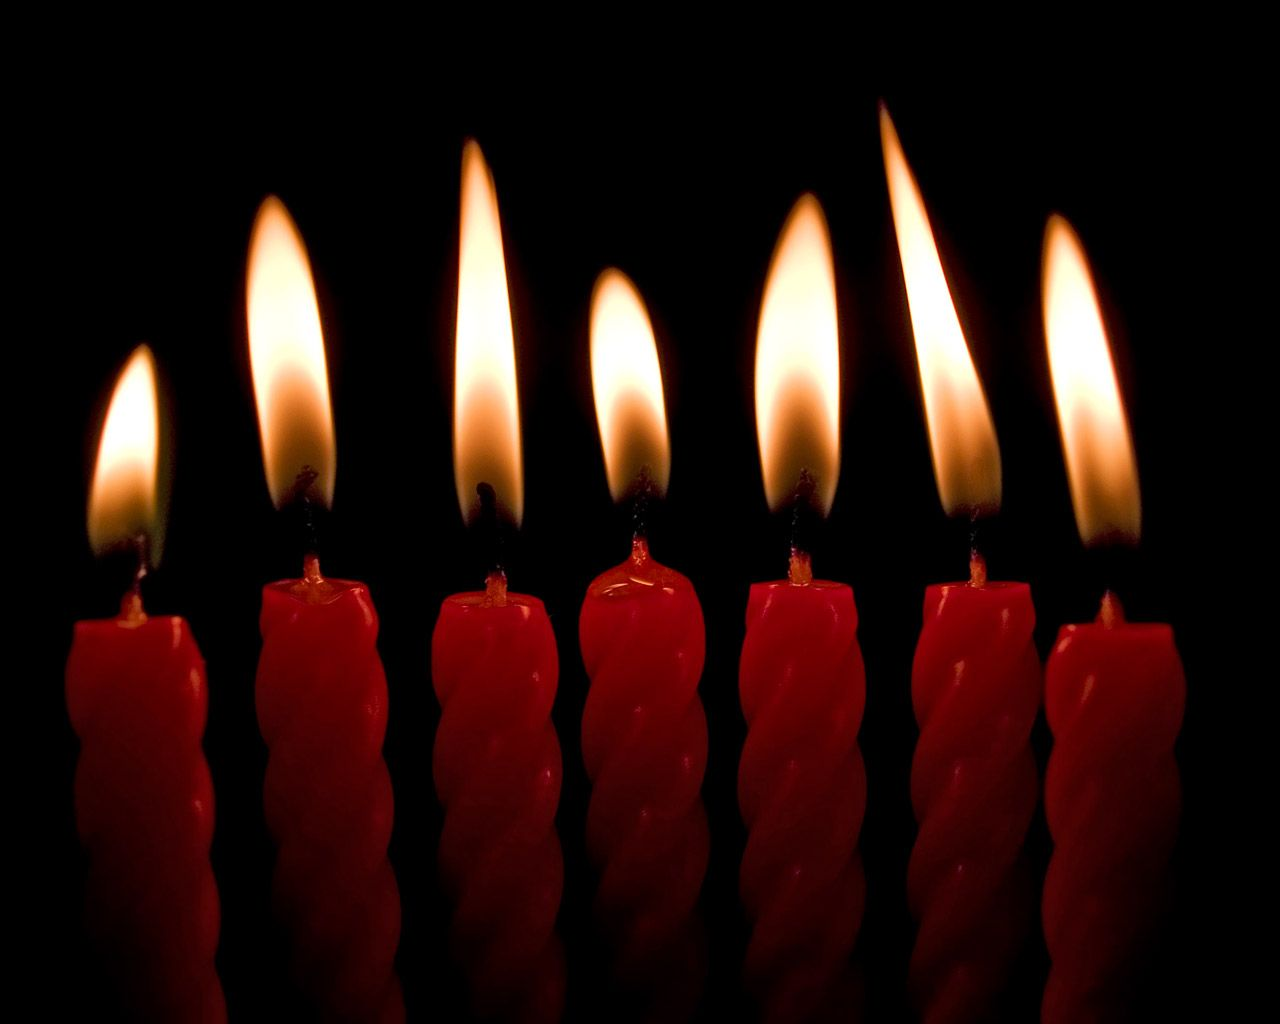 hd wallpapers 7 candles